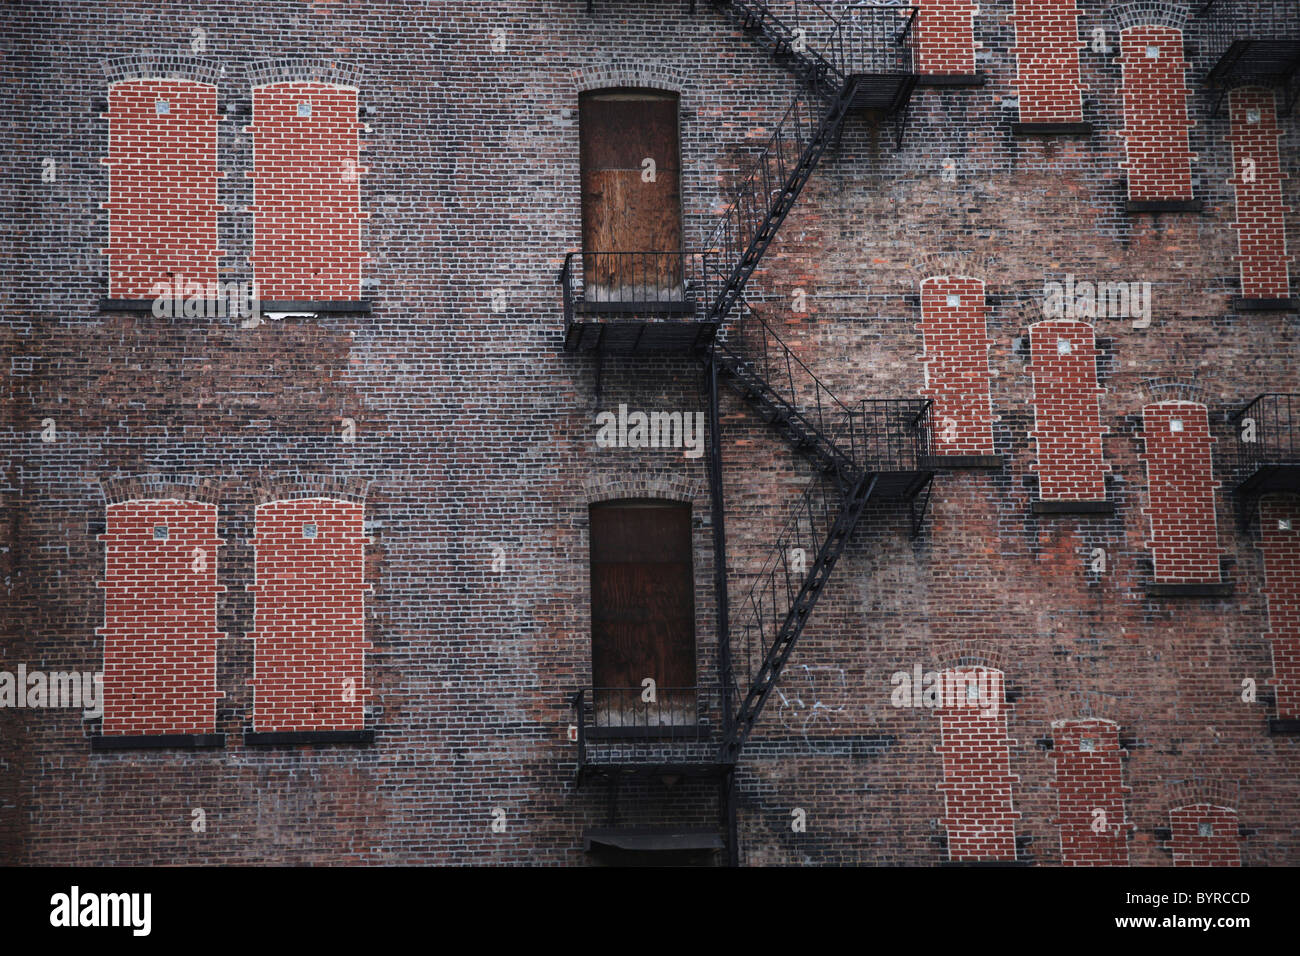 a fire escape going up the side of a brick building; manhattan, new york city, new york, united states of america - Stock Image